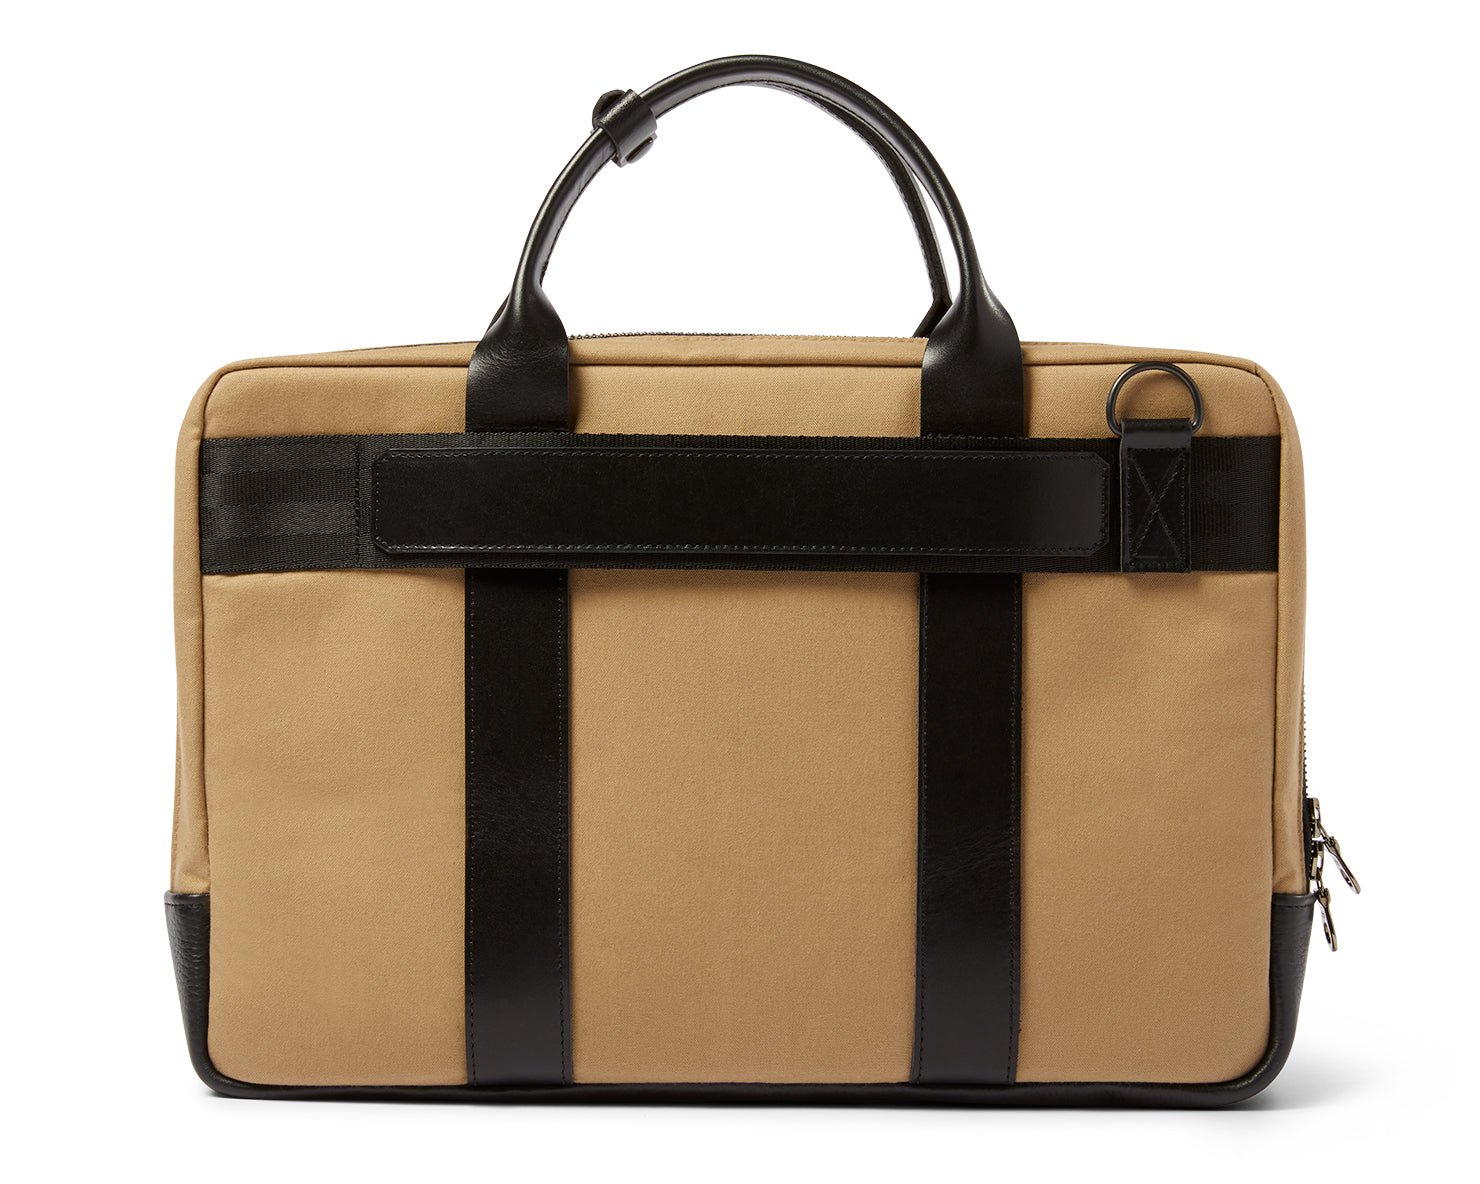 UTILITY ATTACHÉ BRIEFCASE | KILLSPENCER® - Khaki Canvas